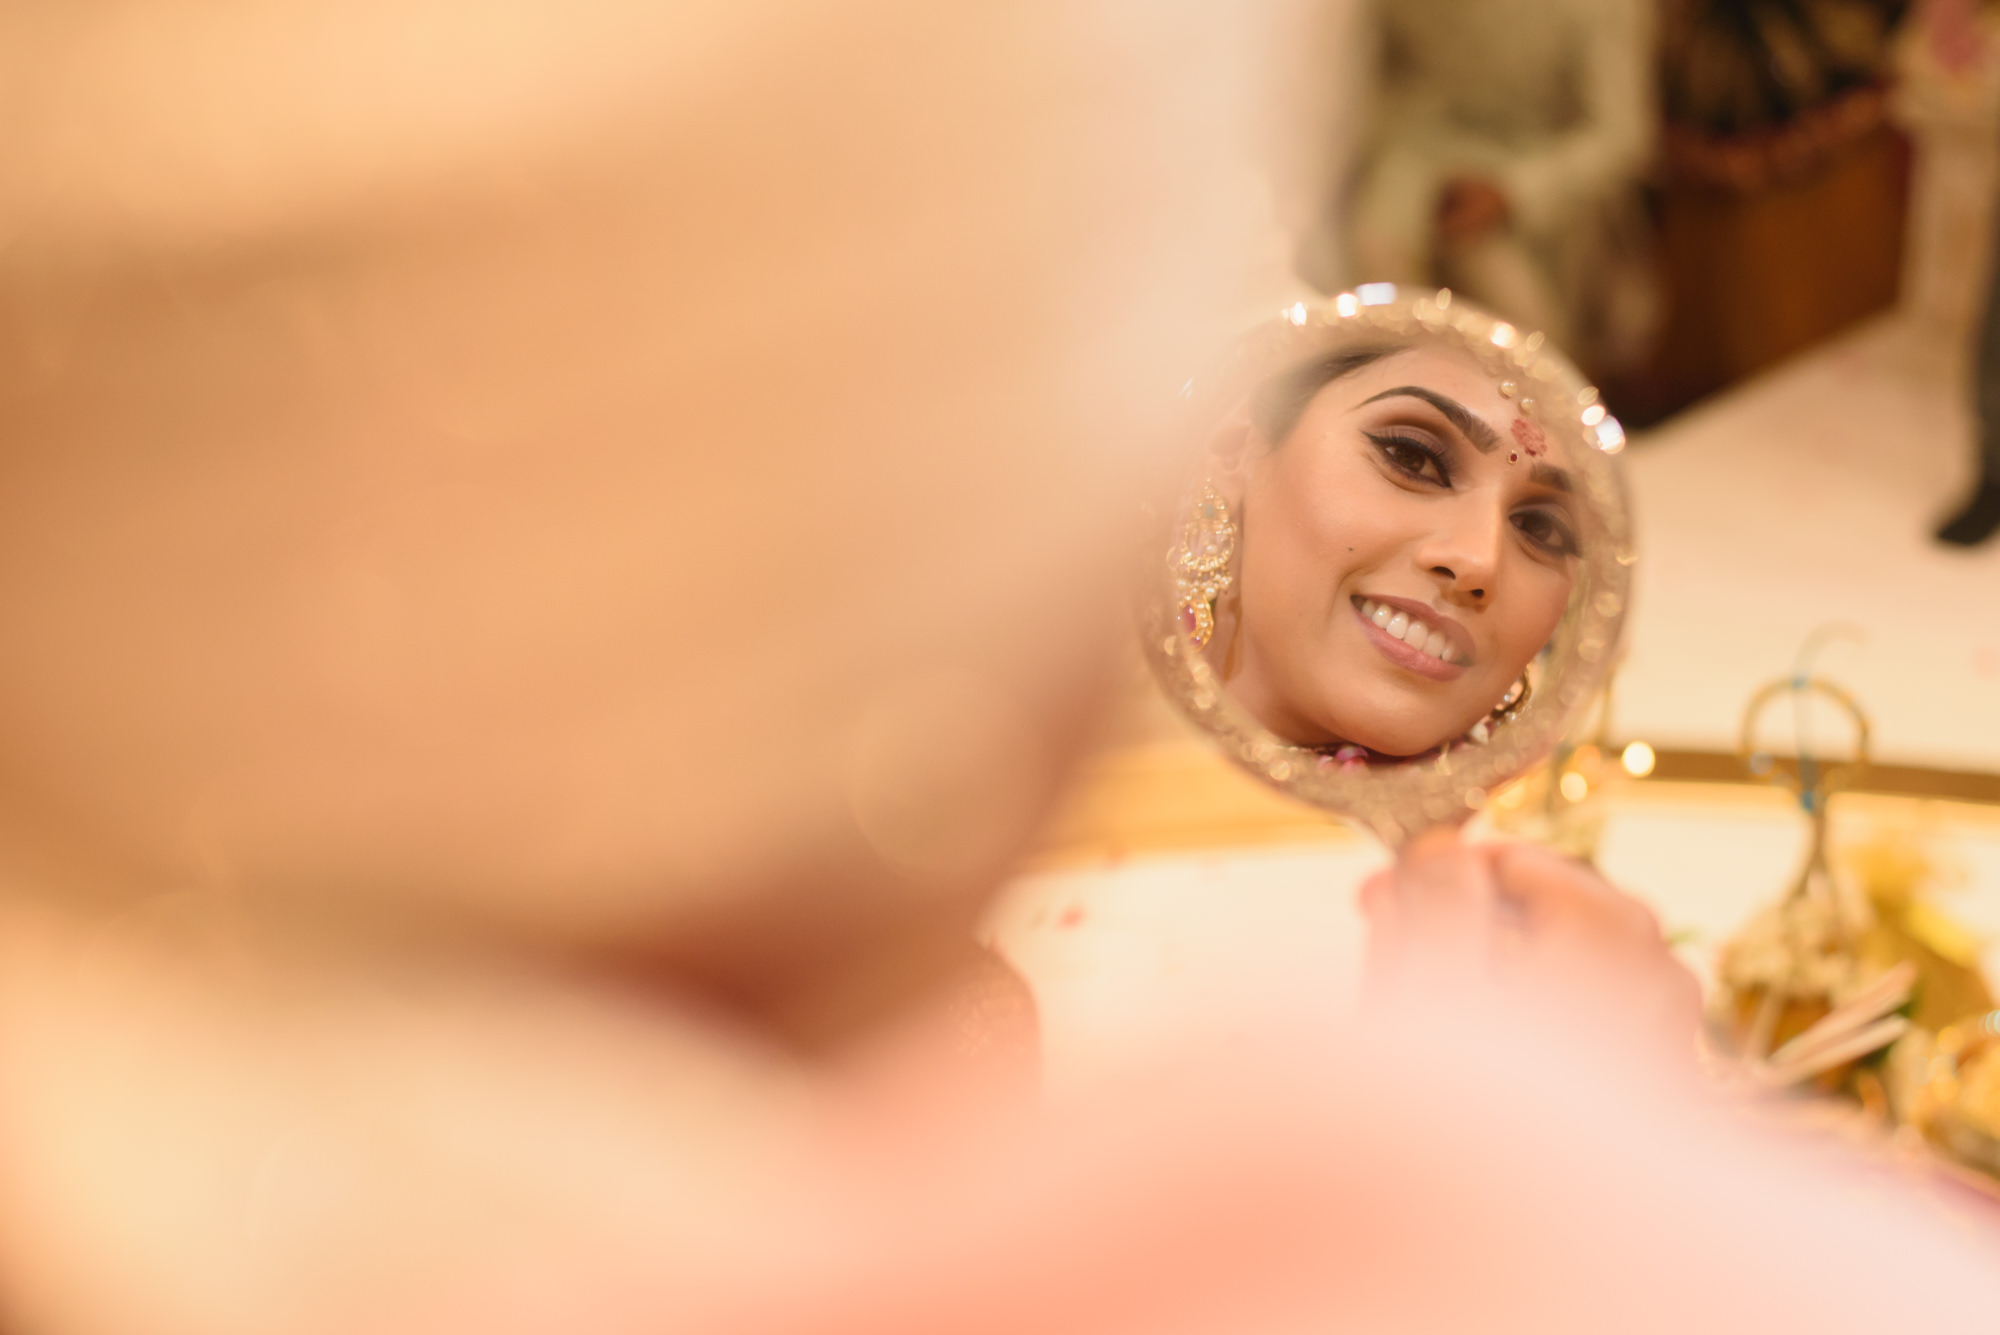 Tamil Gujrati hindu wedding photography photographer london the savoy -61.jpg